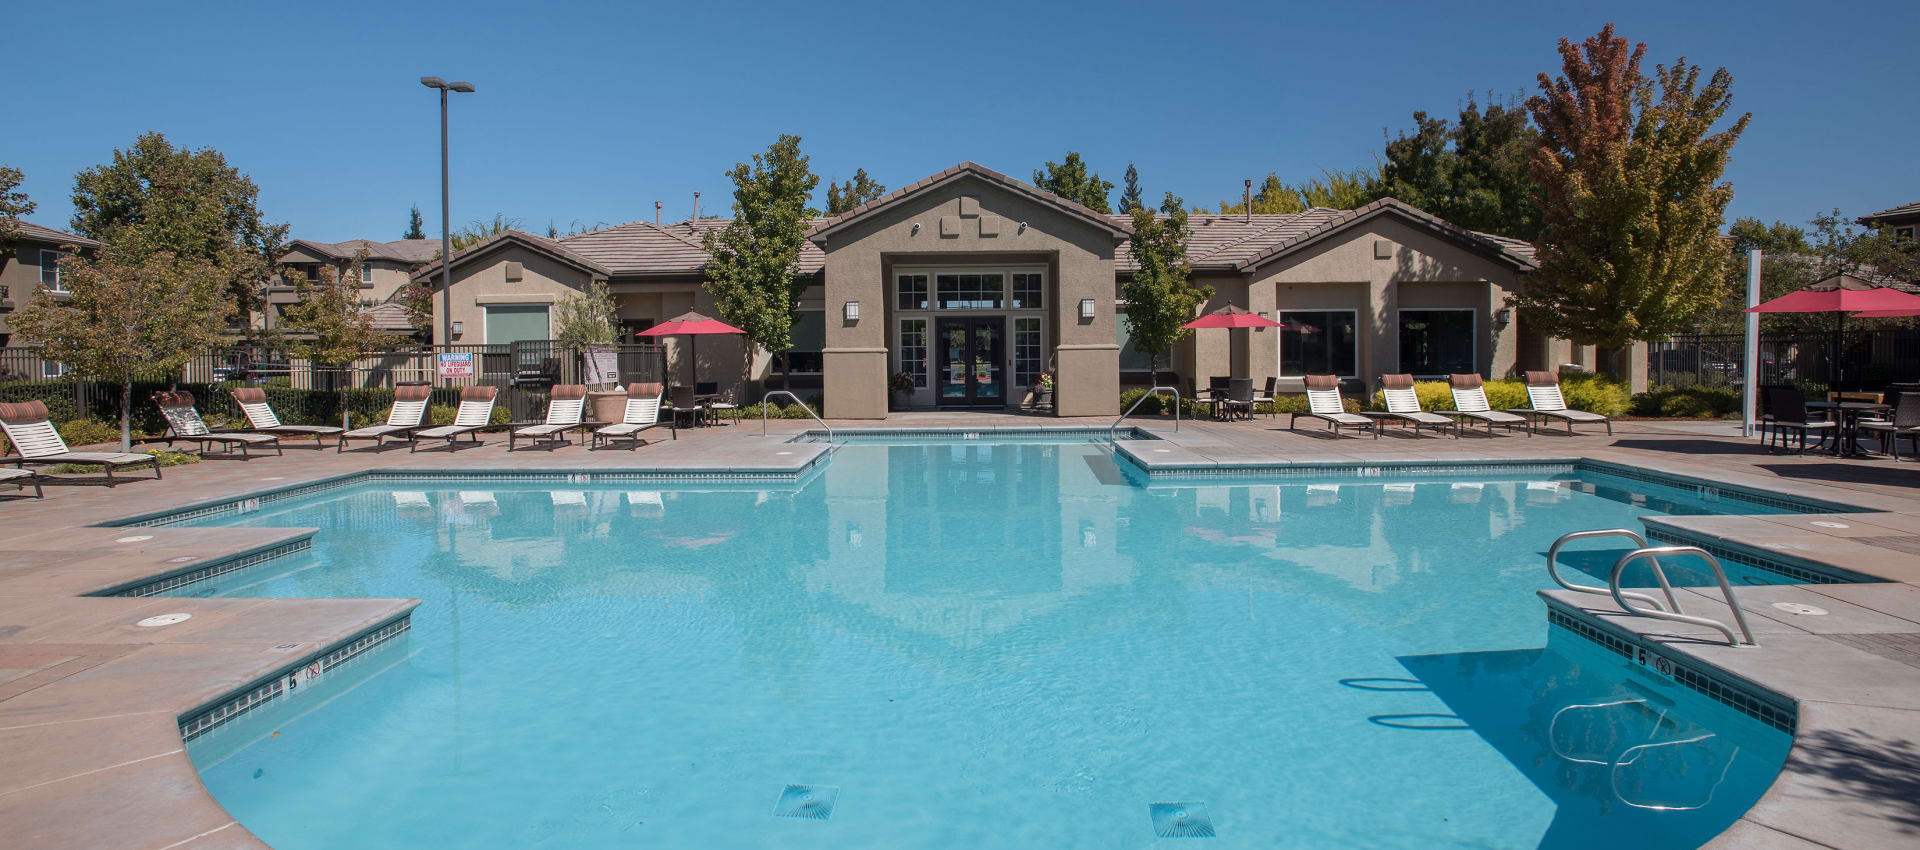 The Artisan Apartment Homes offers a spacious swimming pool in Sacramento, California